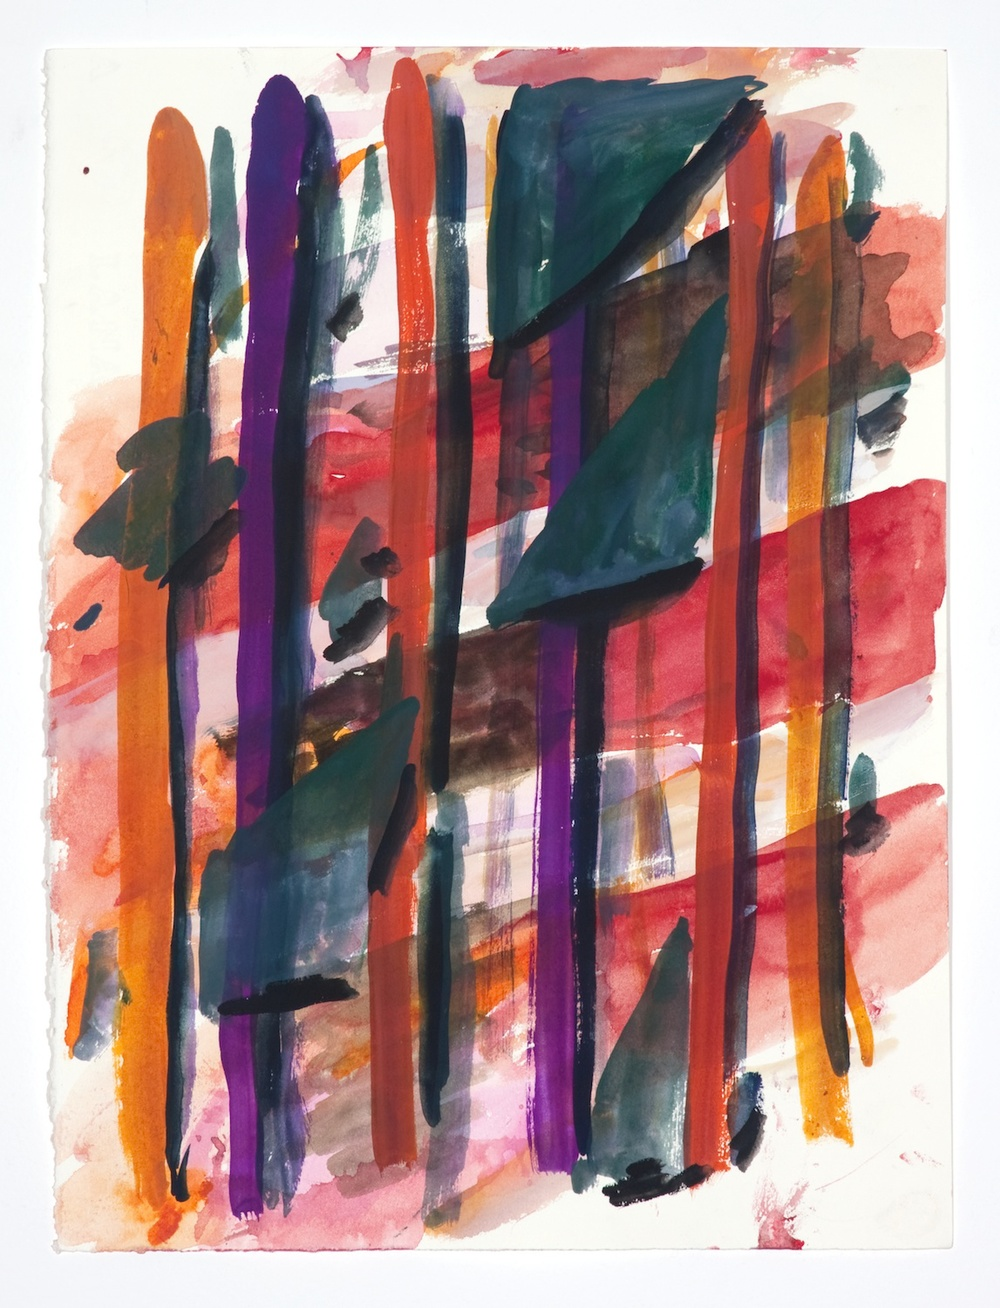 Jon Pestoni  Untitled  2009 Gouache on paper 15h x 11w in JP065